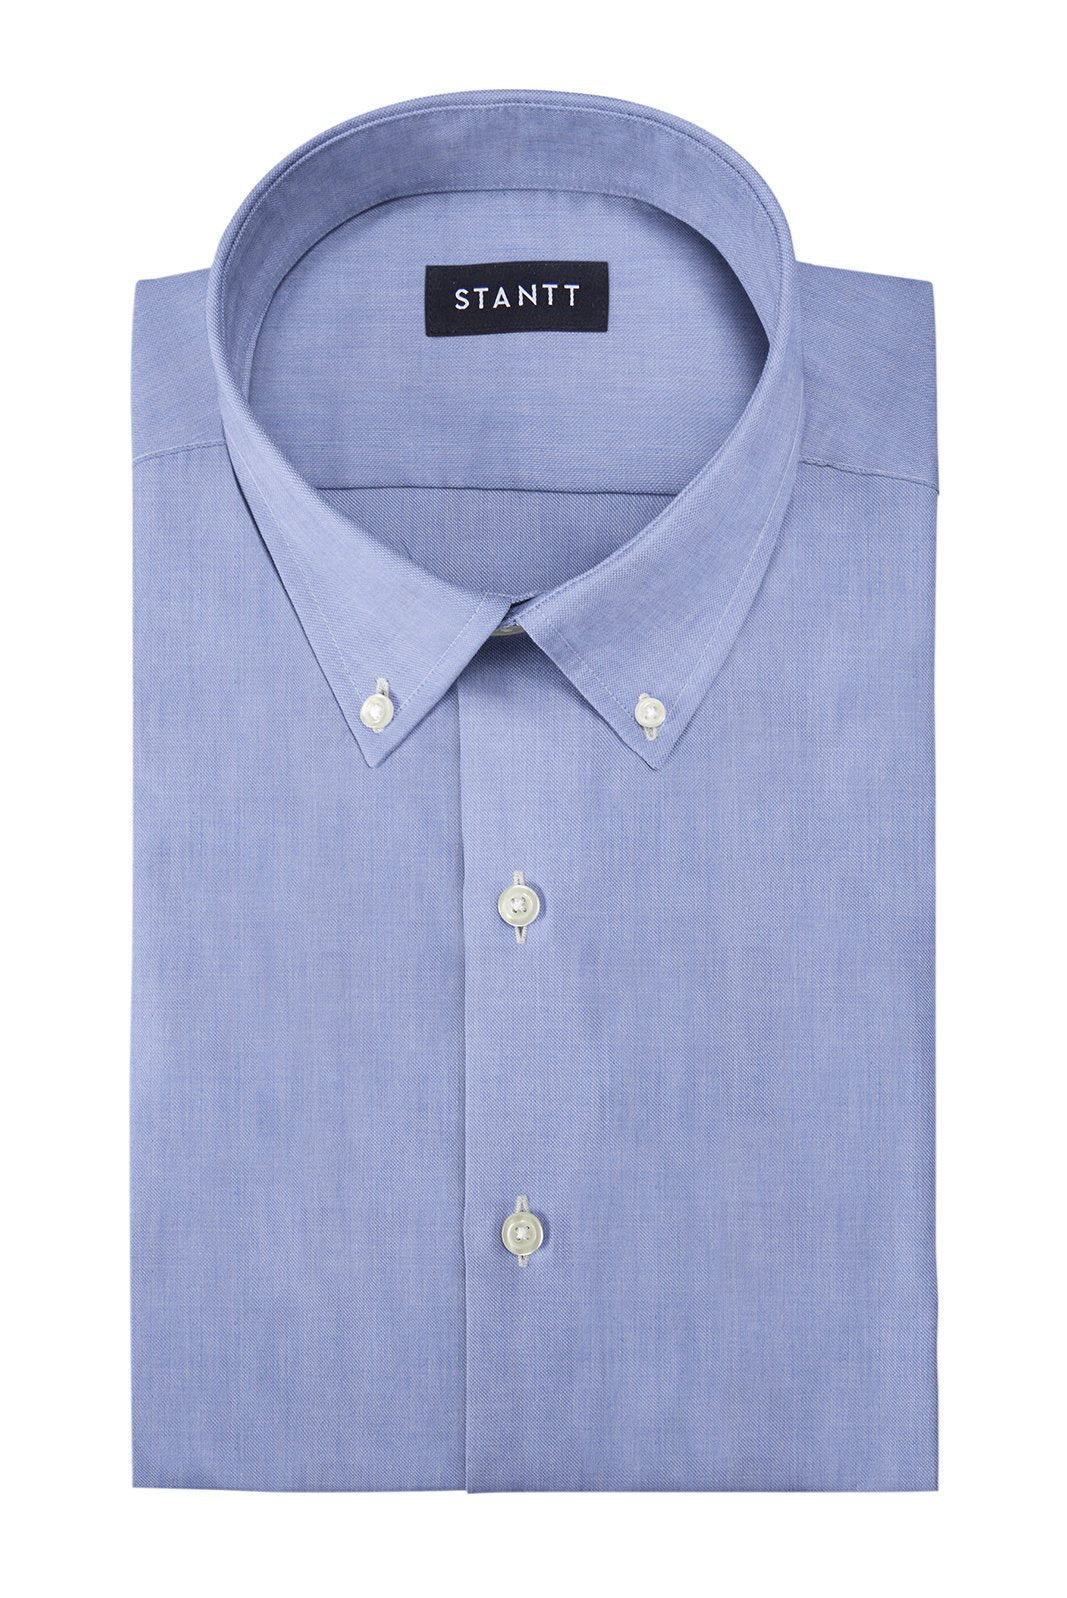 Soft Chambray: Button-Down Collar, Barrel Cuff